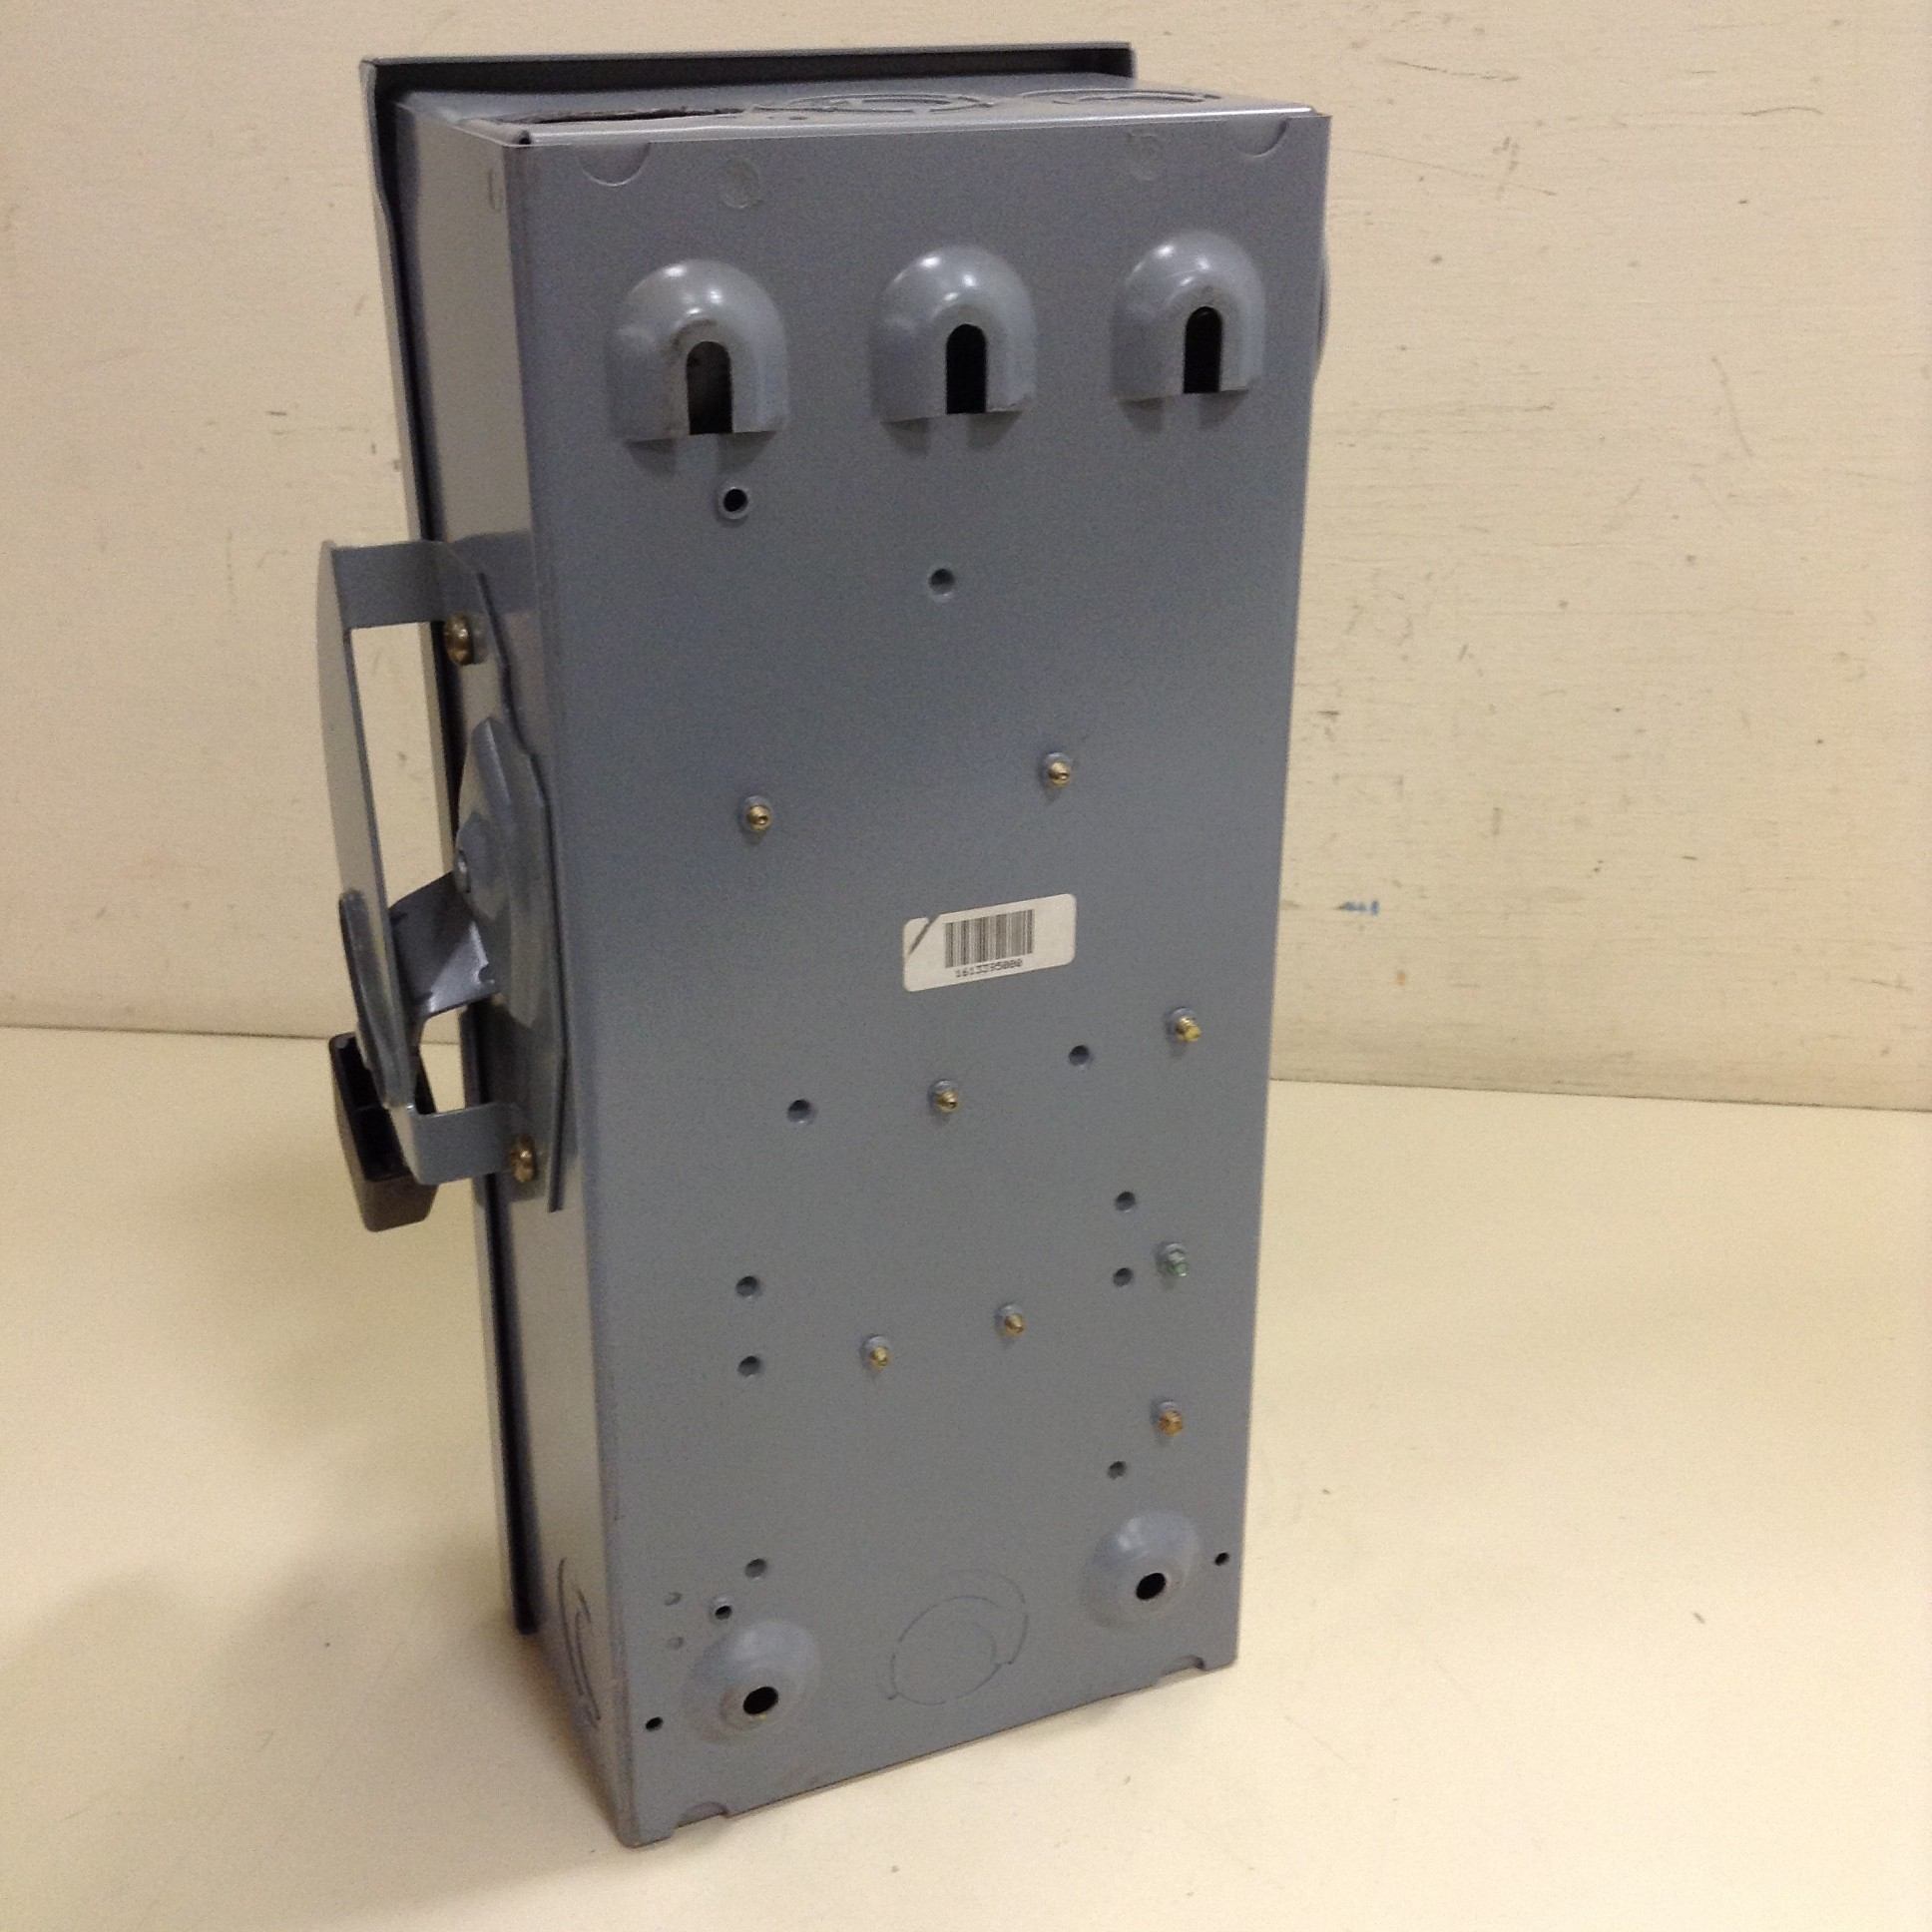 Square D General Duty Safety Switch D322N Used #69273 eBay #967235